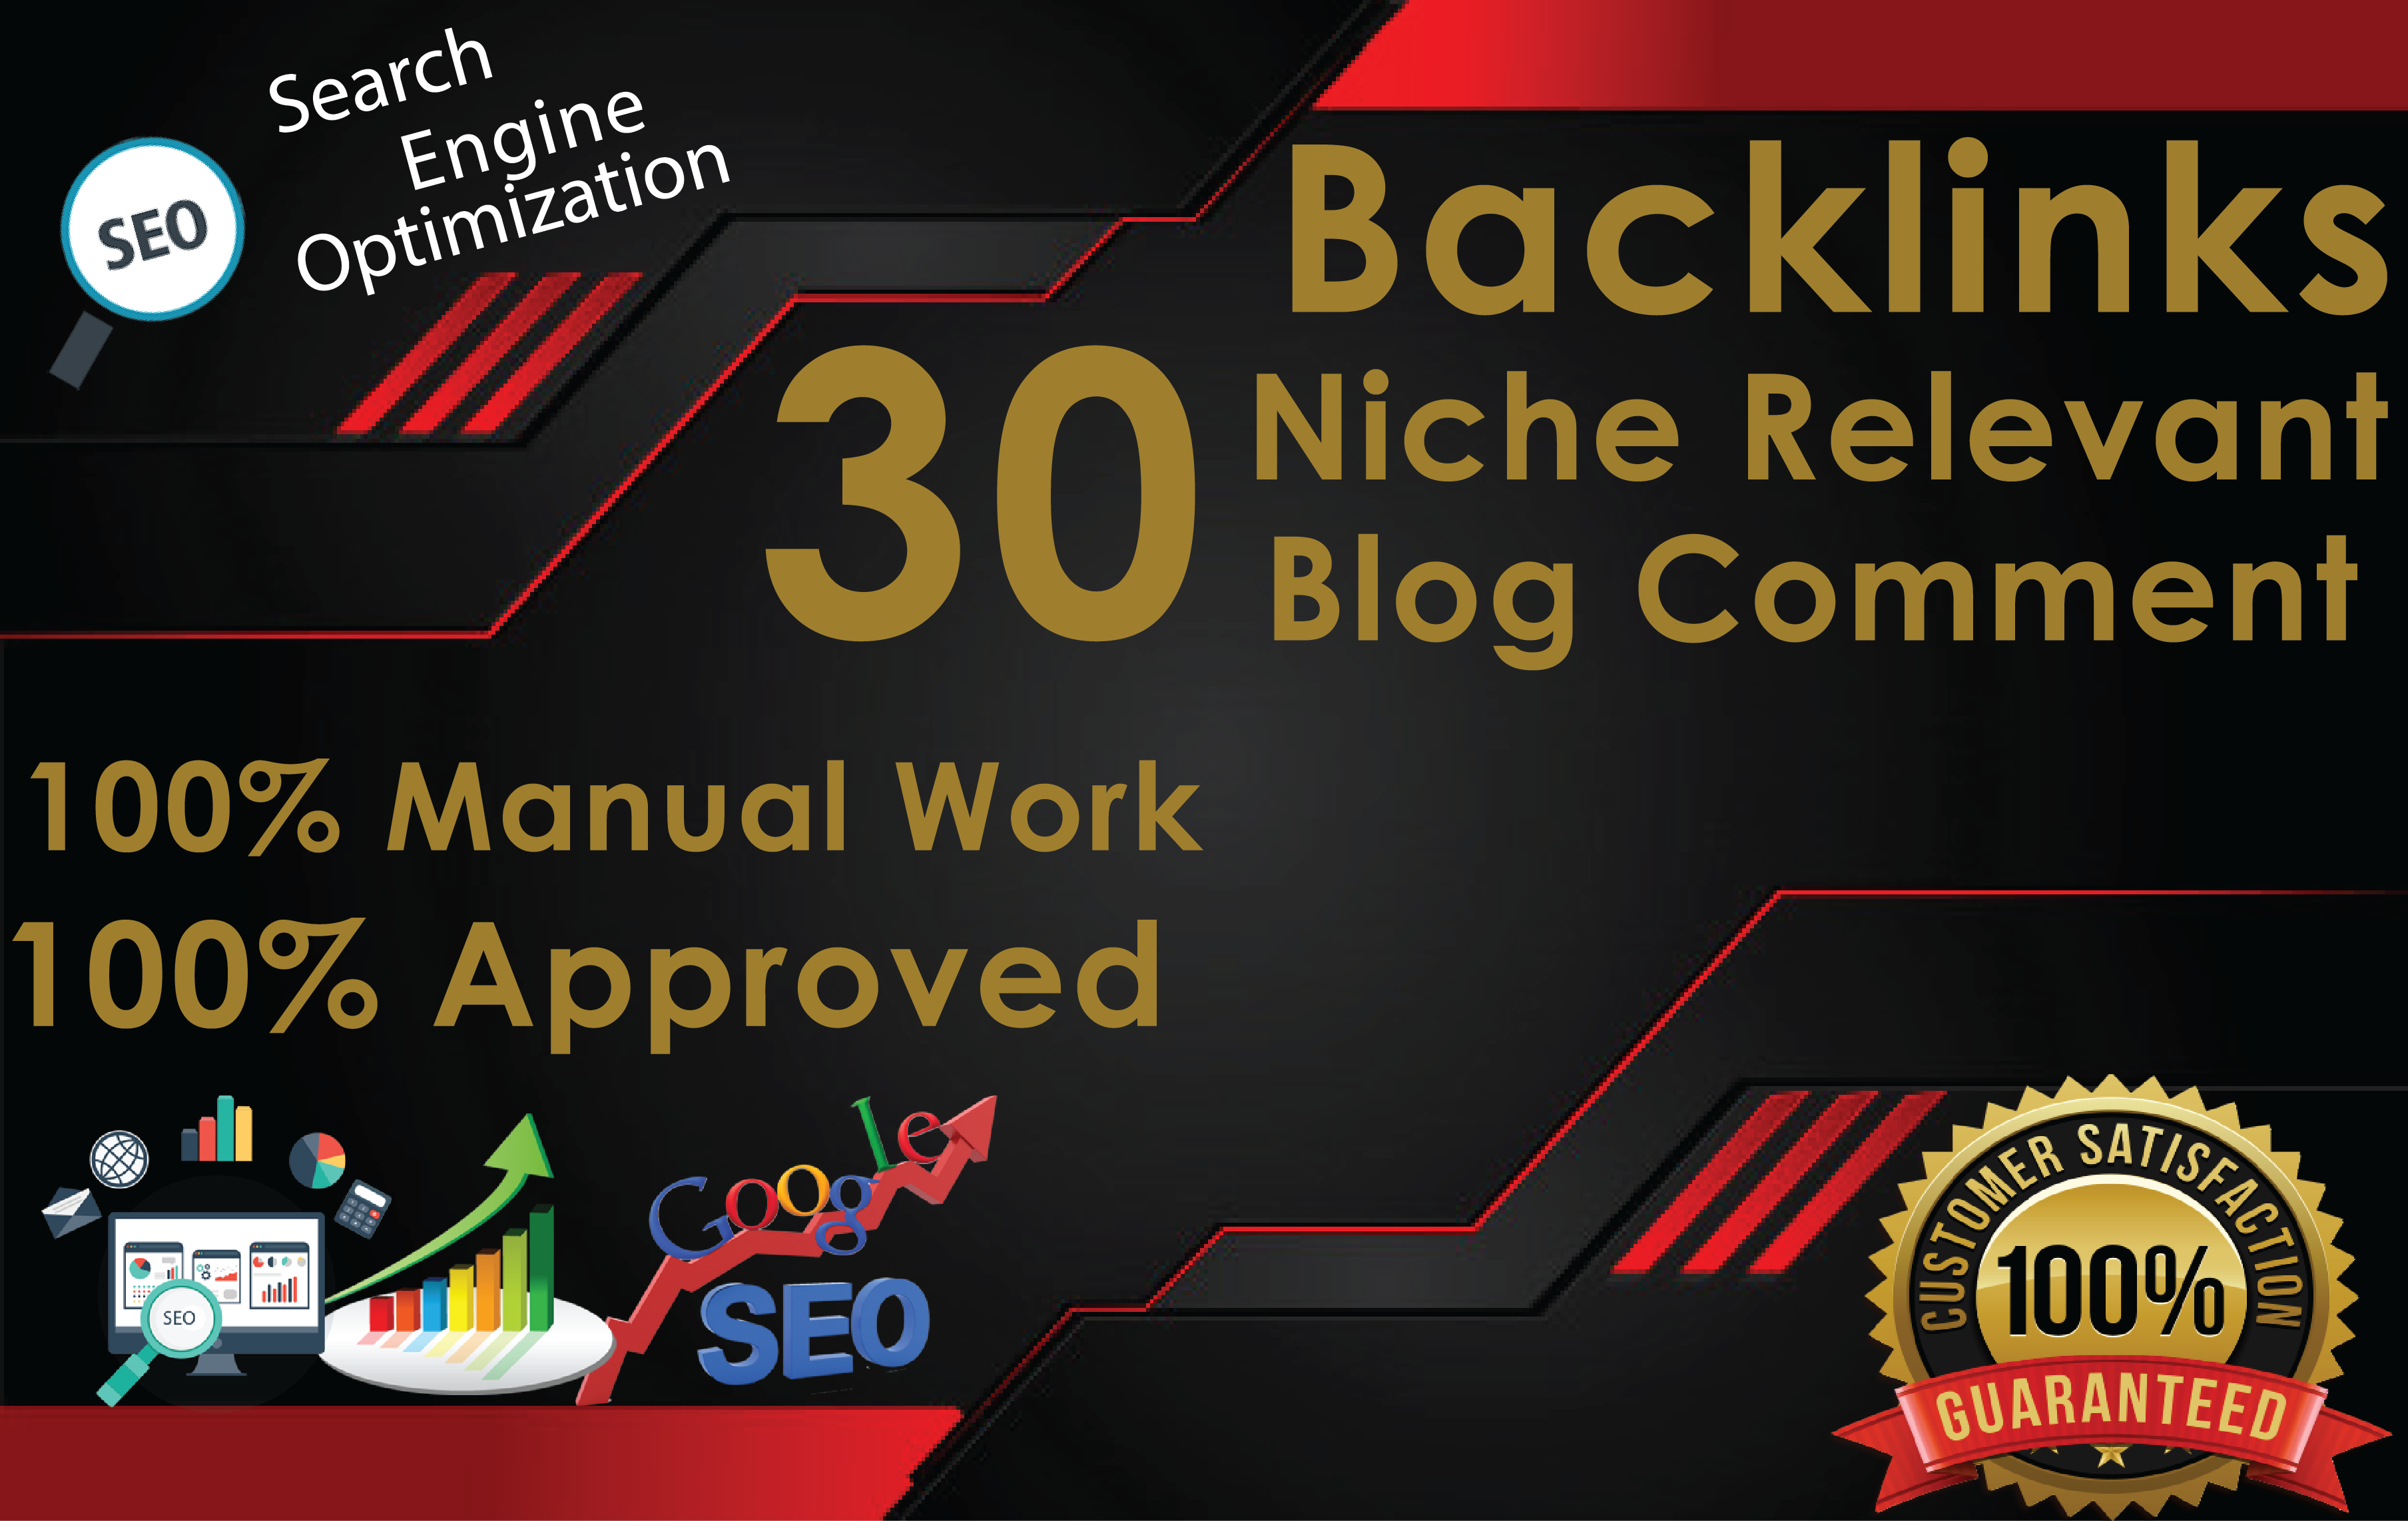 Make 30 Niche Relevant Blog Comment Backlinks Off Page SEO